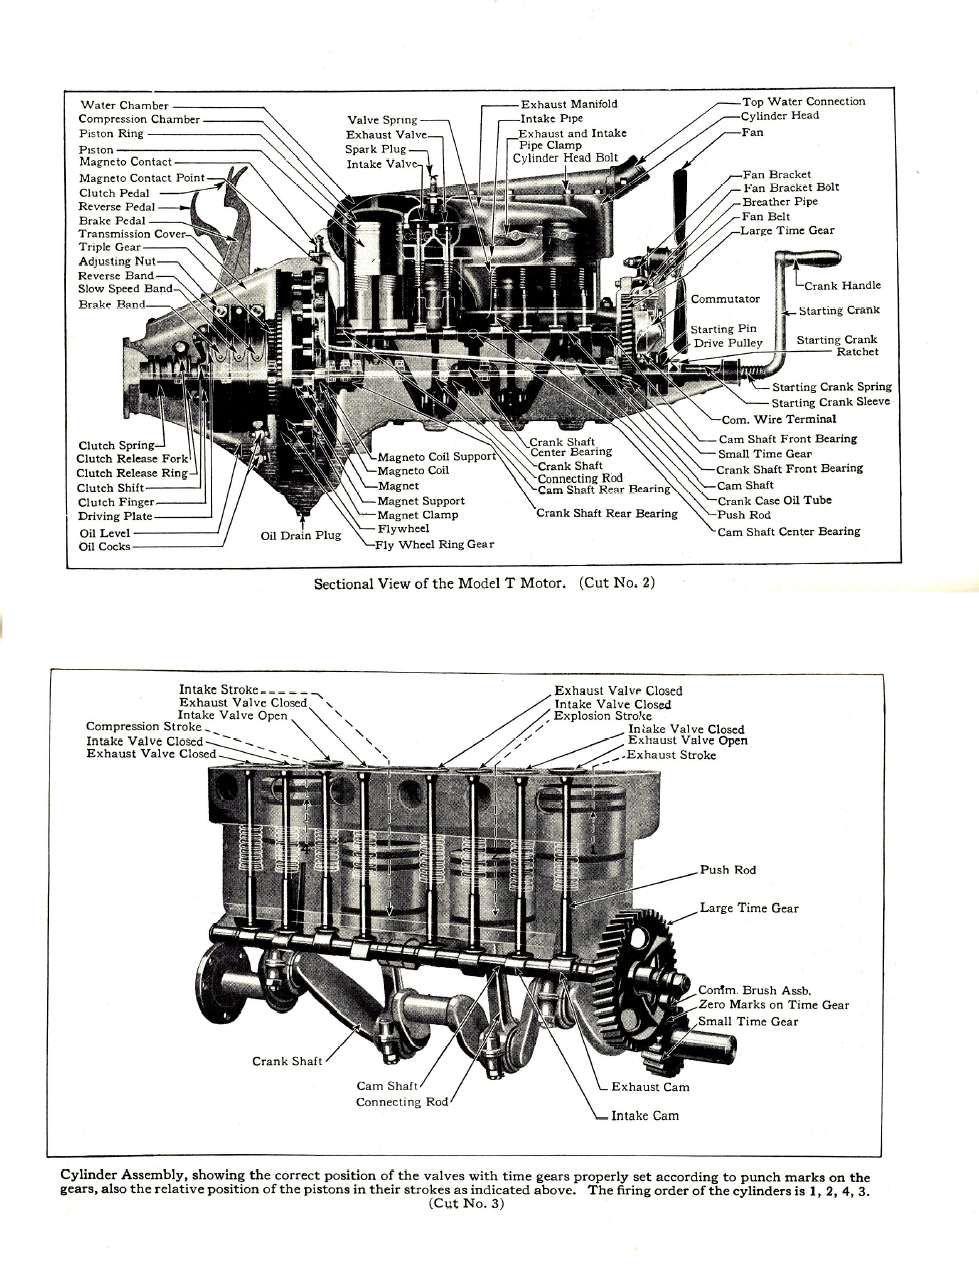 model t ford forum: engine schematics for school project | model t,  engineering, ford fairlane  pinterest